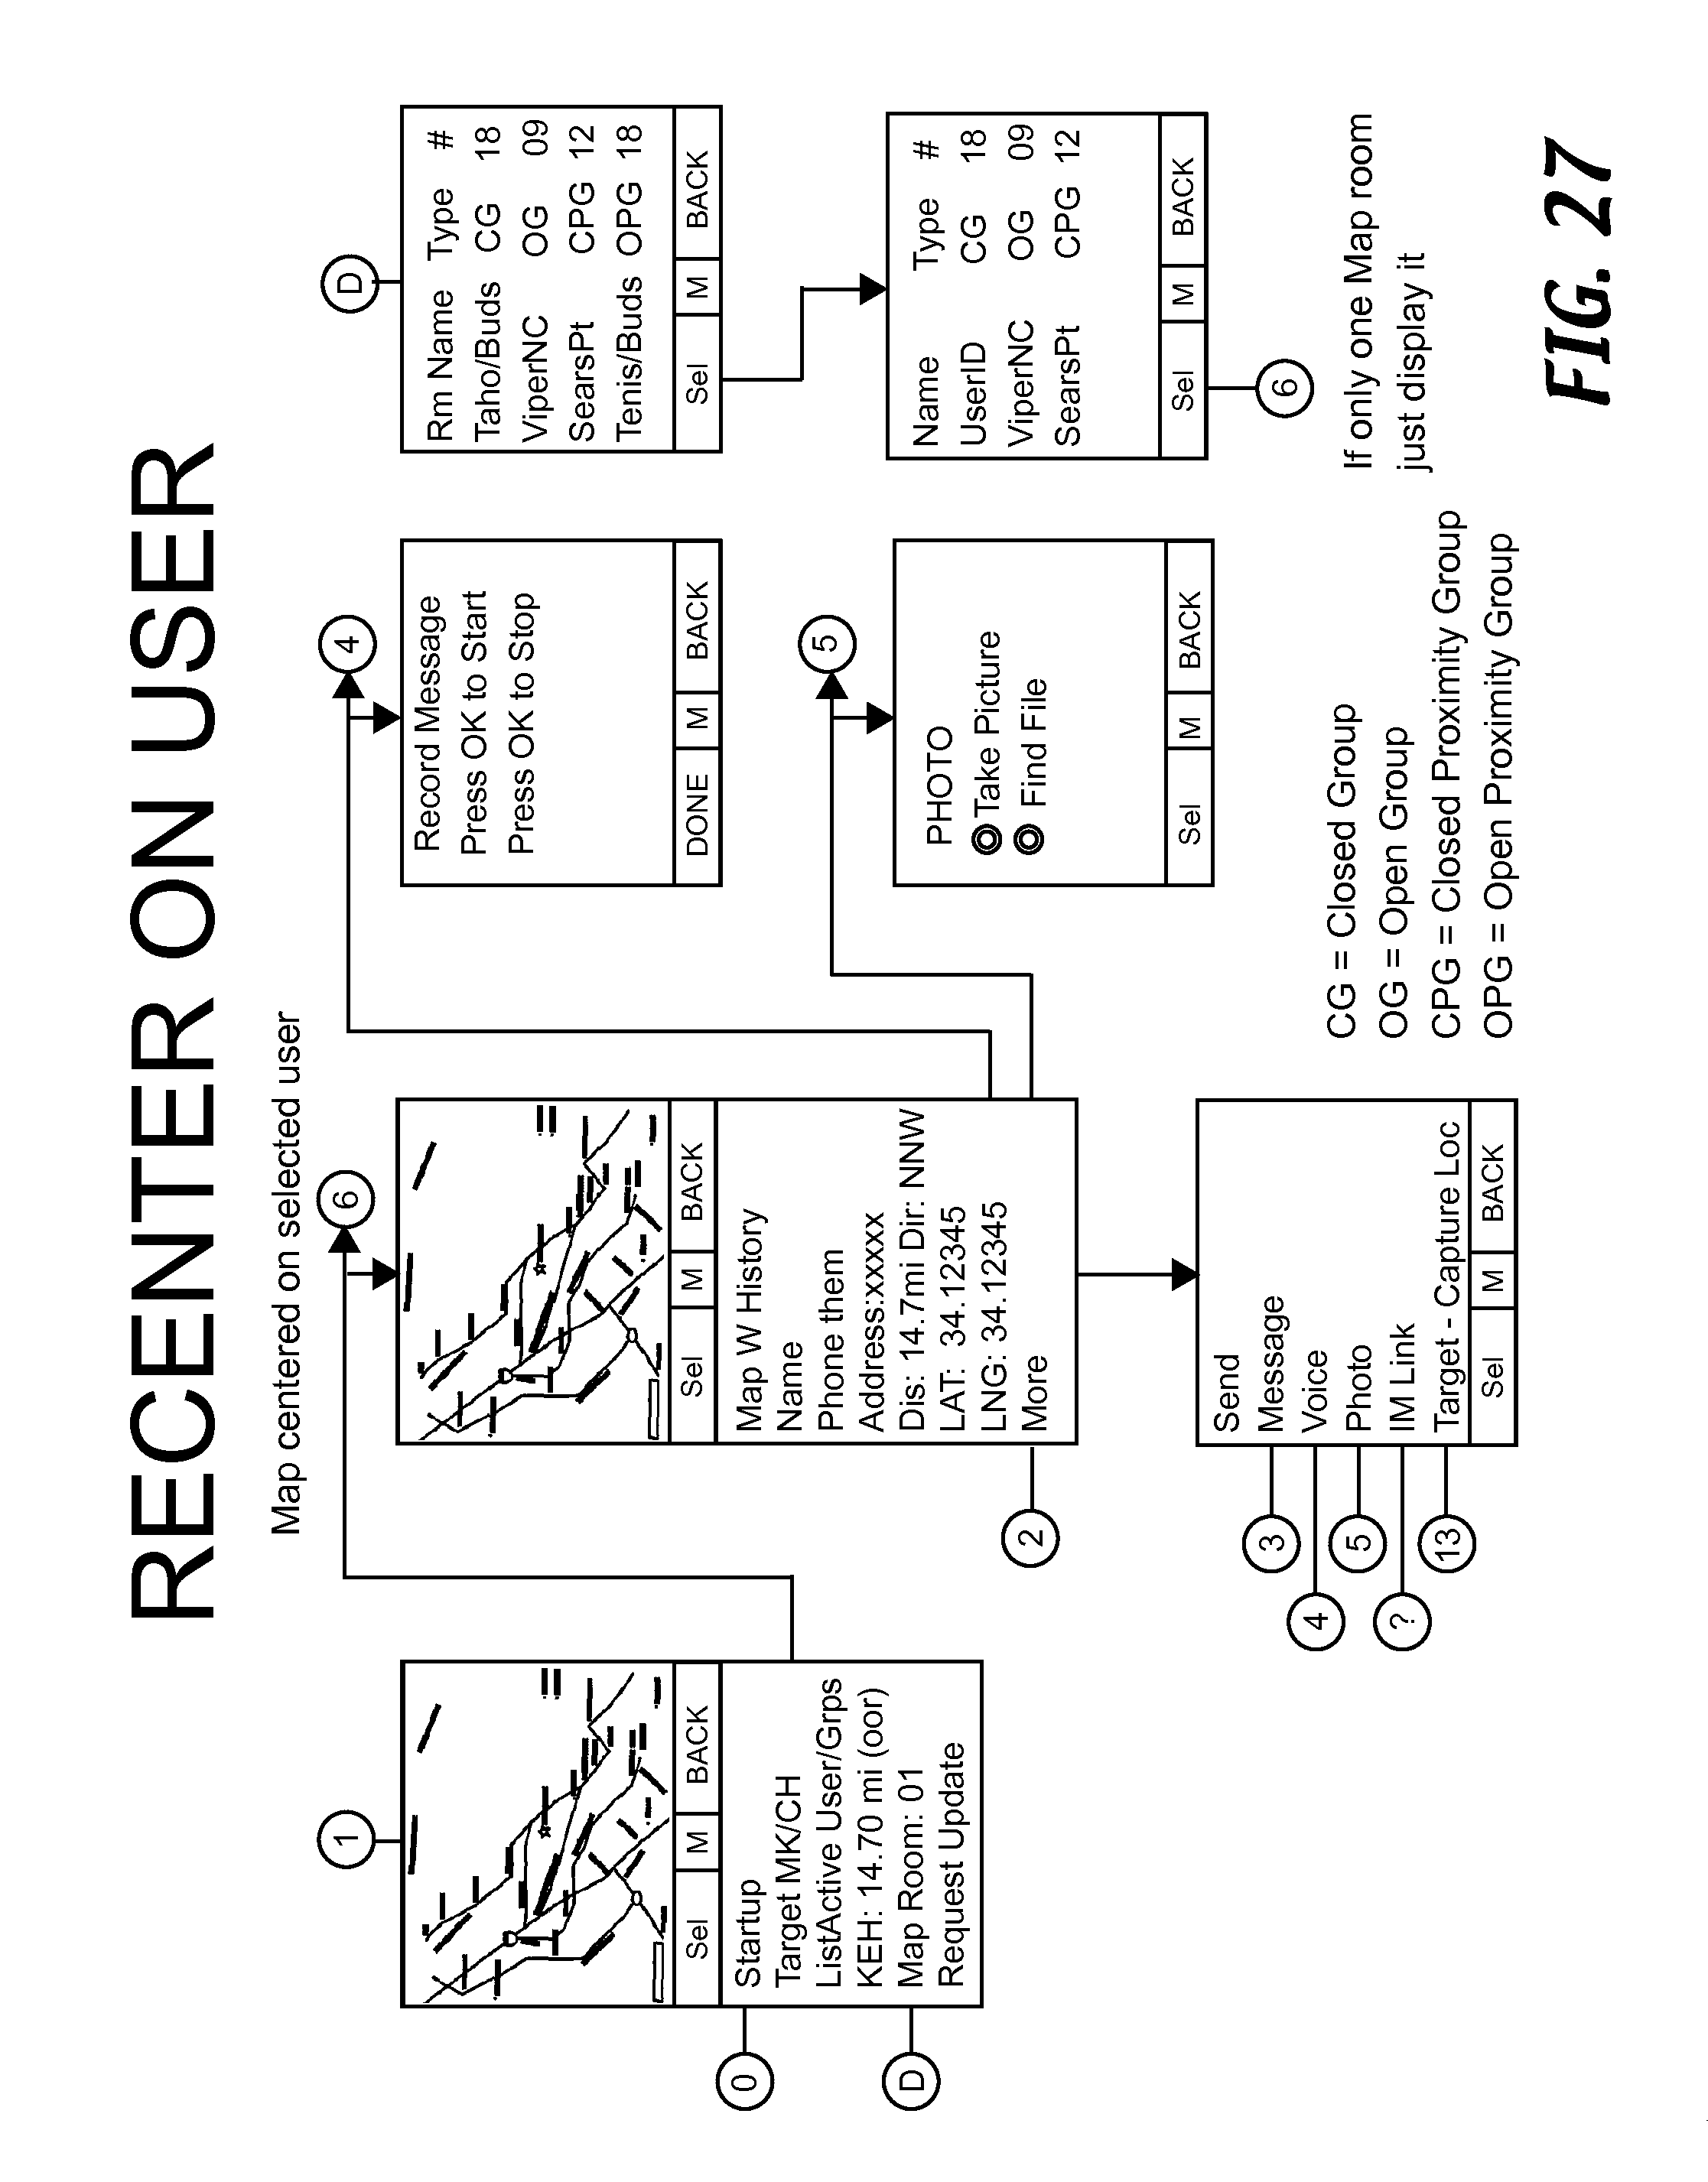 Us20140295895a1 Methods And Systems For Sharing Position Data Stalker Radar Wiring Diagram Between Subscribers Involving Multiple Wireless Providers Google Patents